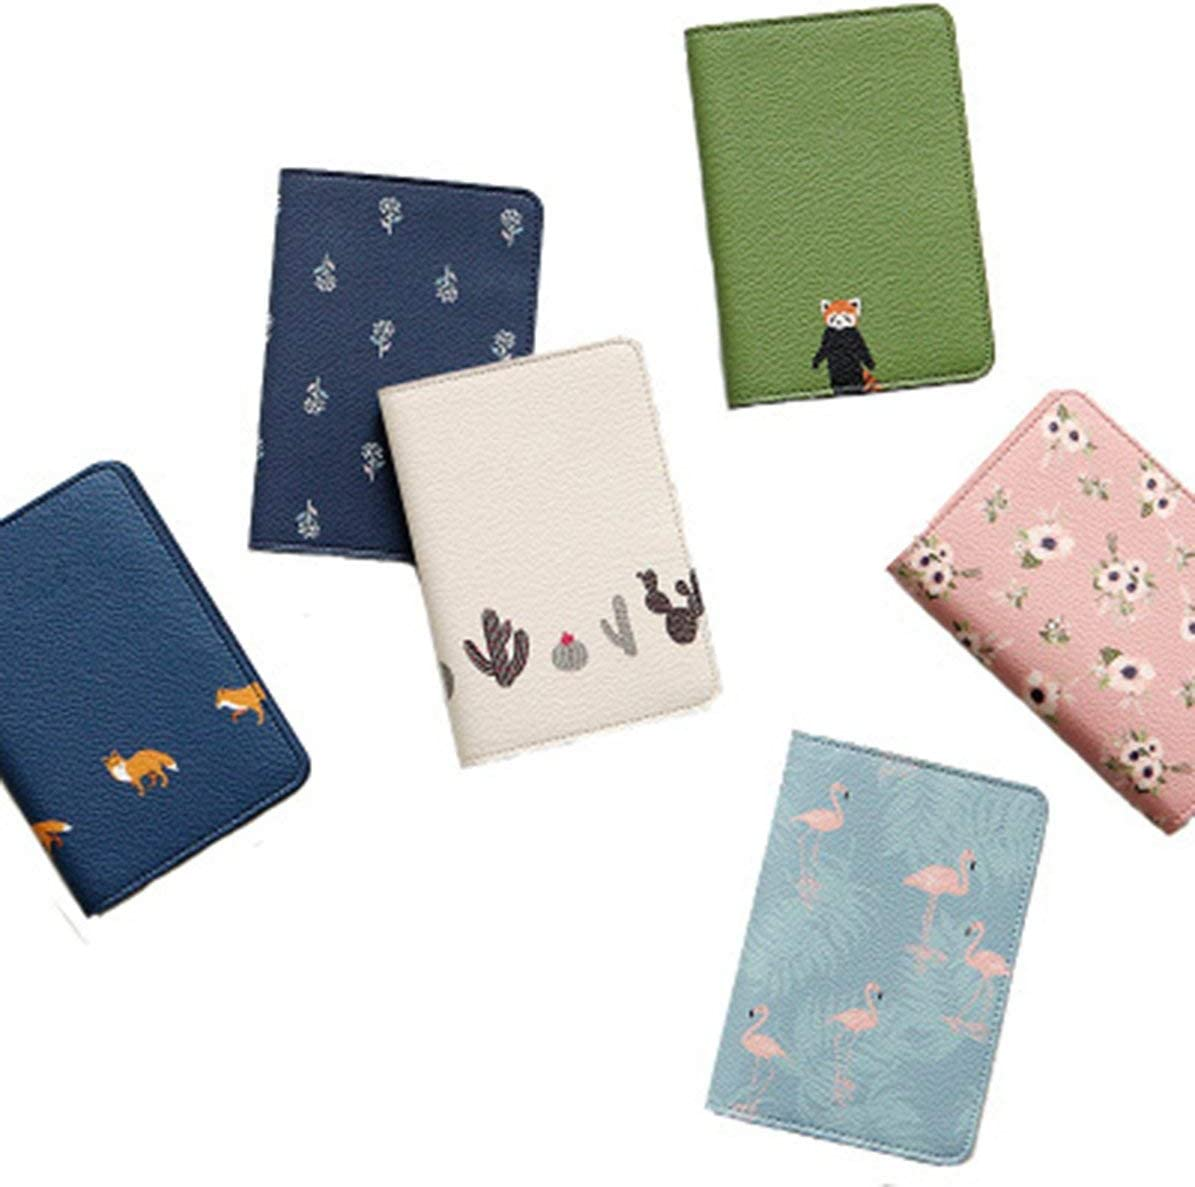 Random Longspeed Creative Passport Holder Protector Shiny Leather Wallet Purse Casual Business Card Holder Soft Passport Cover